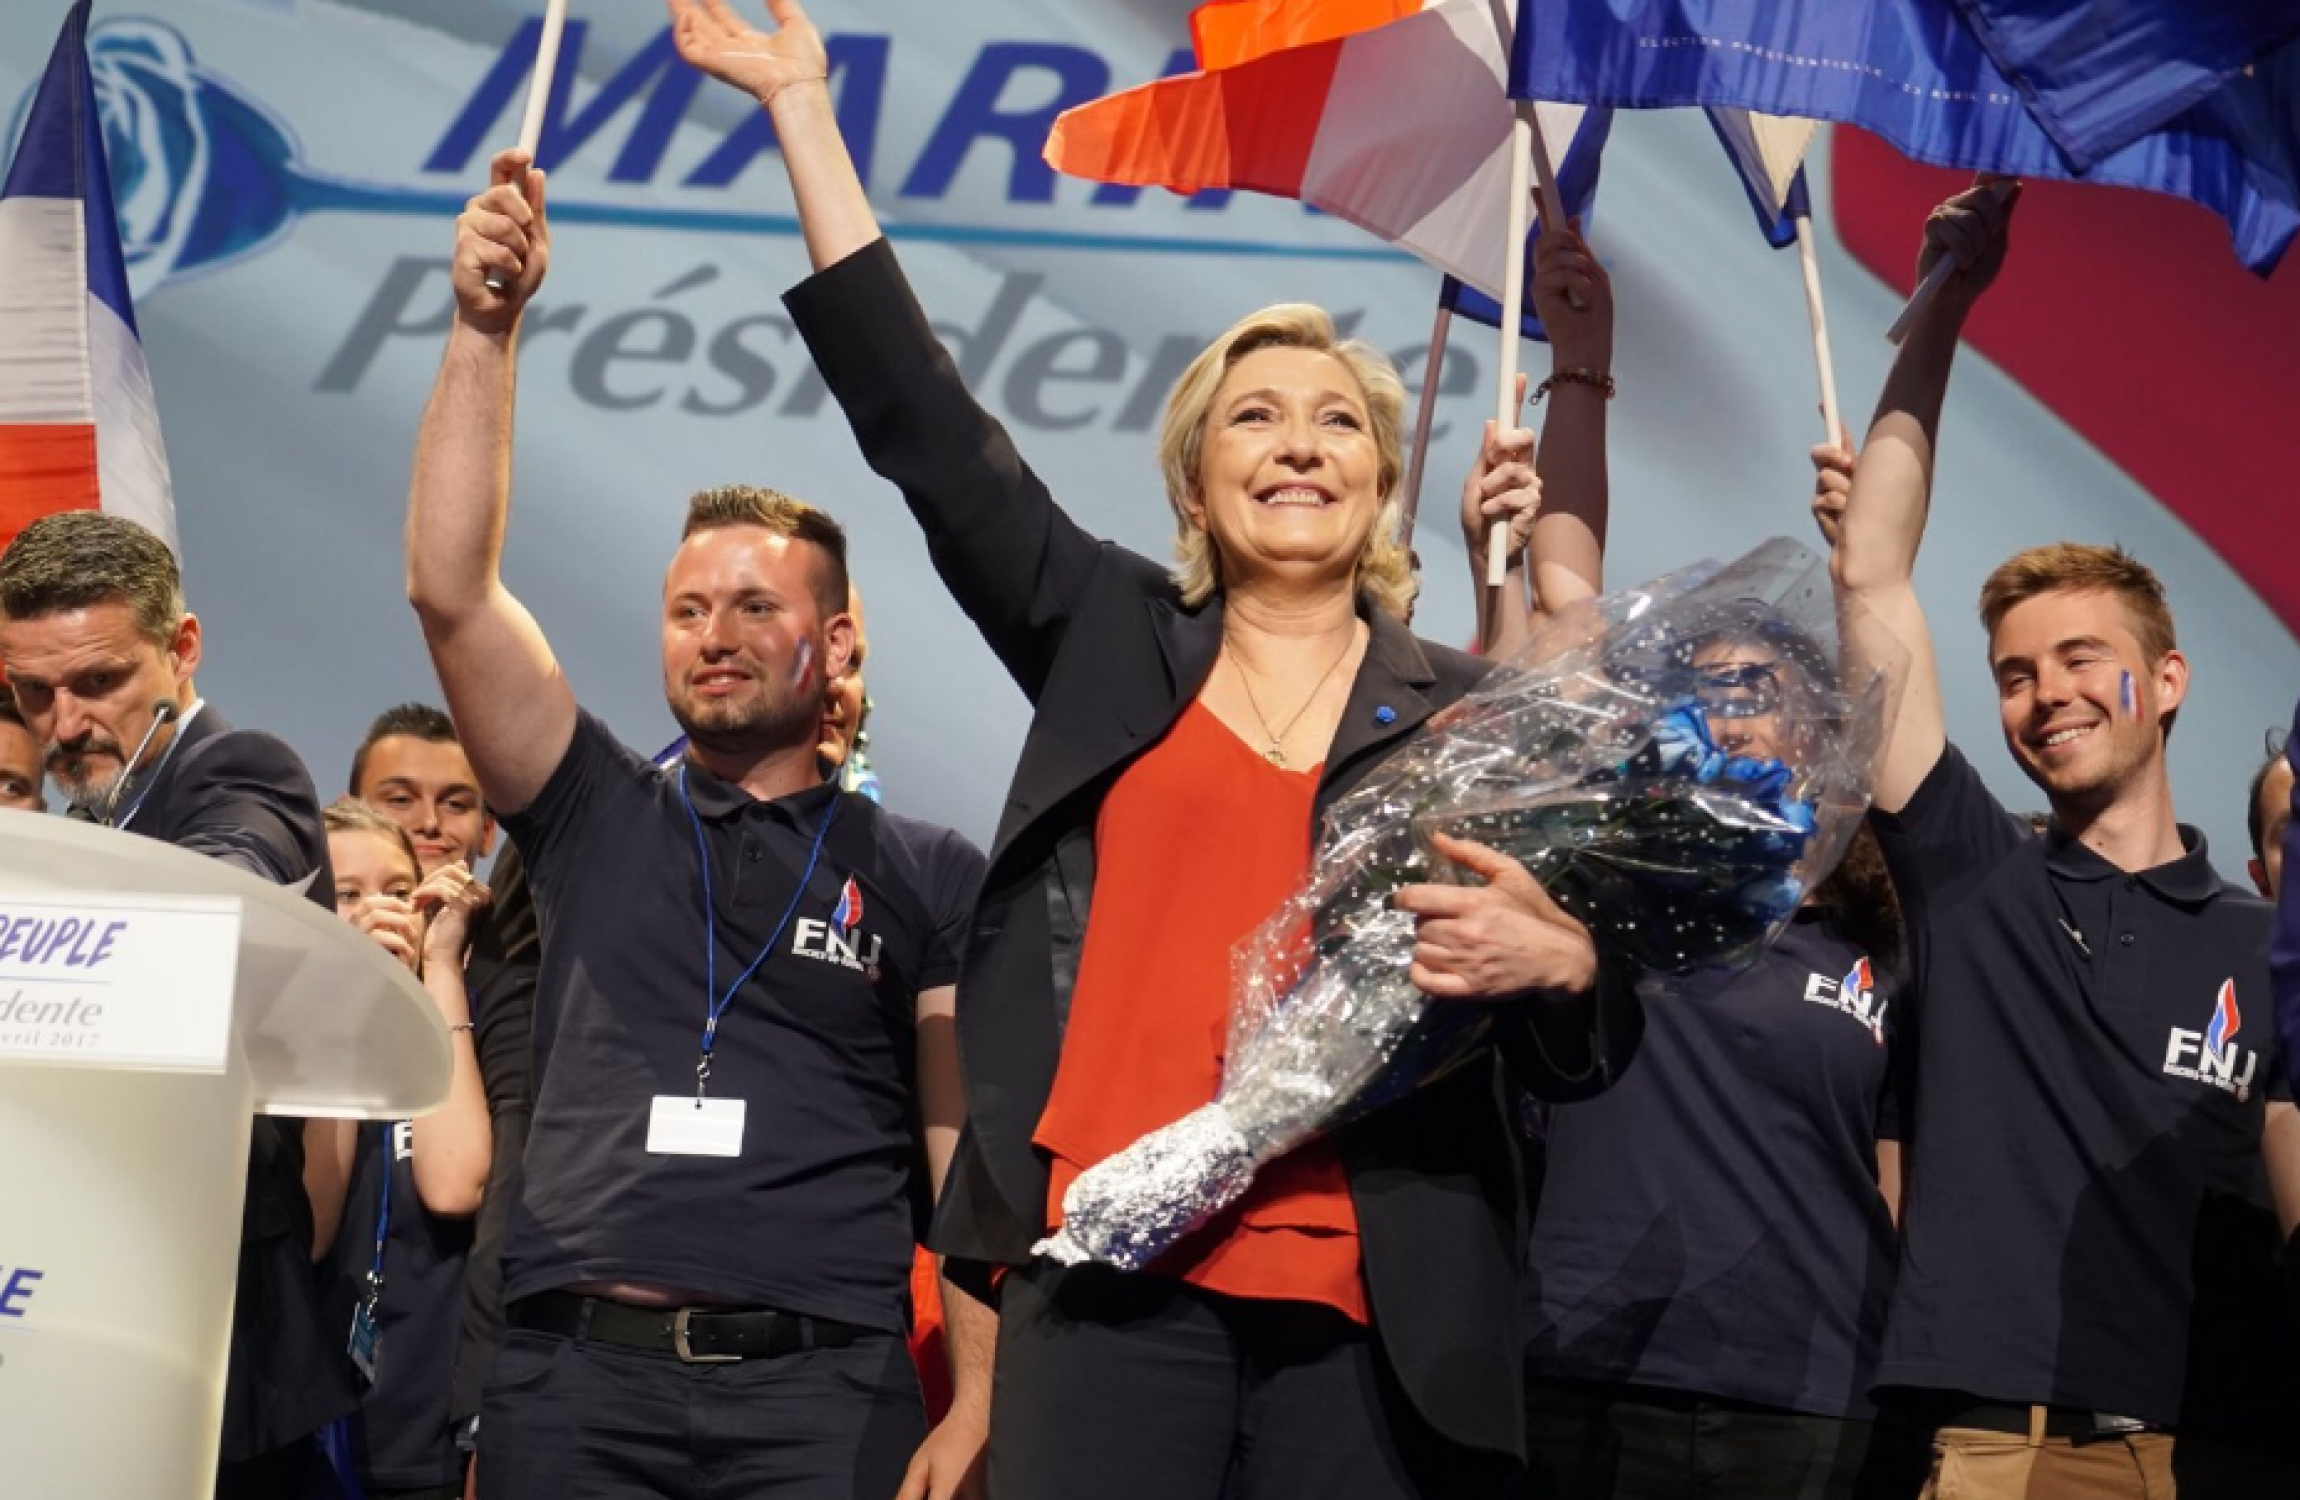 Le Pen Vows To End ALL Immigration To France